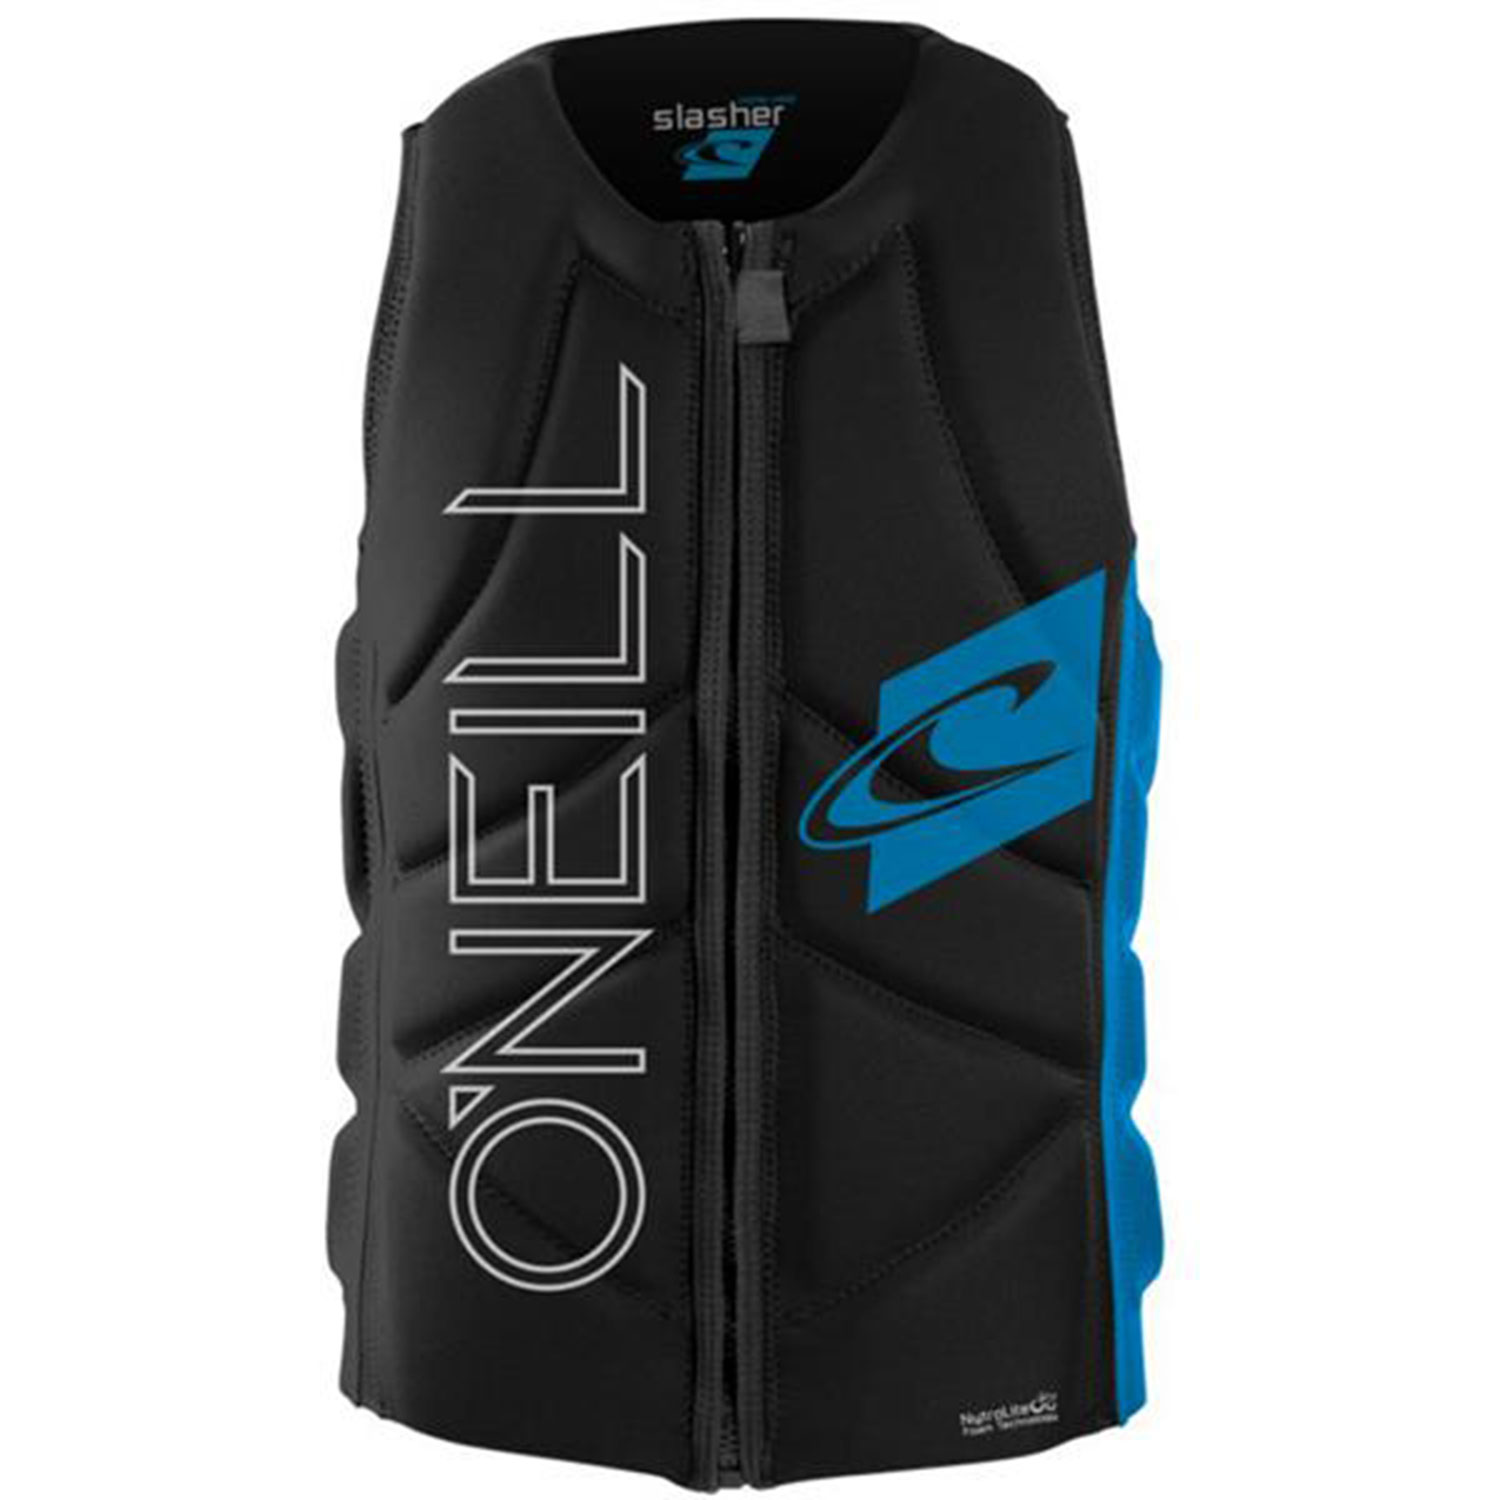 ONeill-2014-Slasher-Comp-Vest-Black-Bright-Blue-Life-Jacket